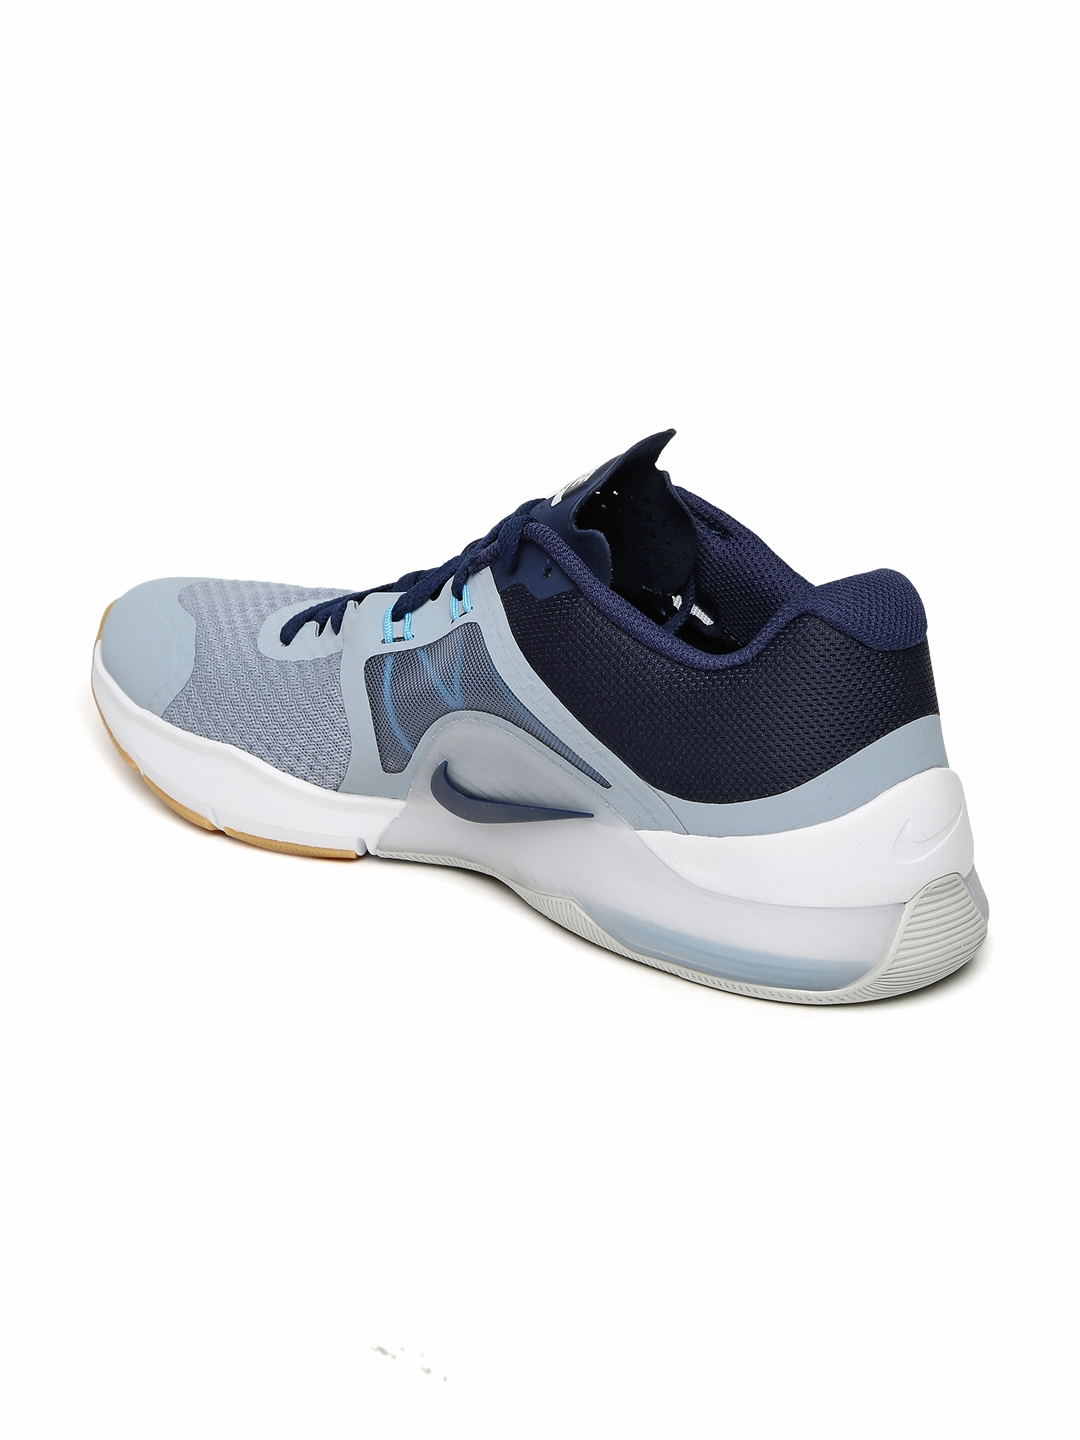 e5700dfcd57fa Buy Nike Men Grey   Navy ZOOM TRAIN COMPLETE 2 Training Shoes ...